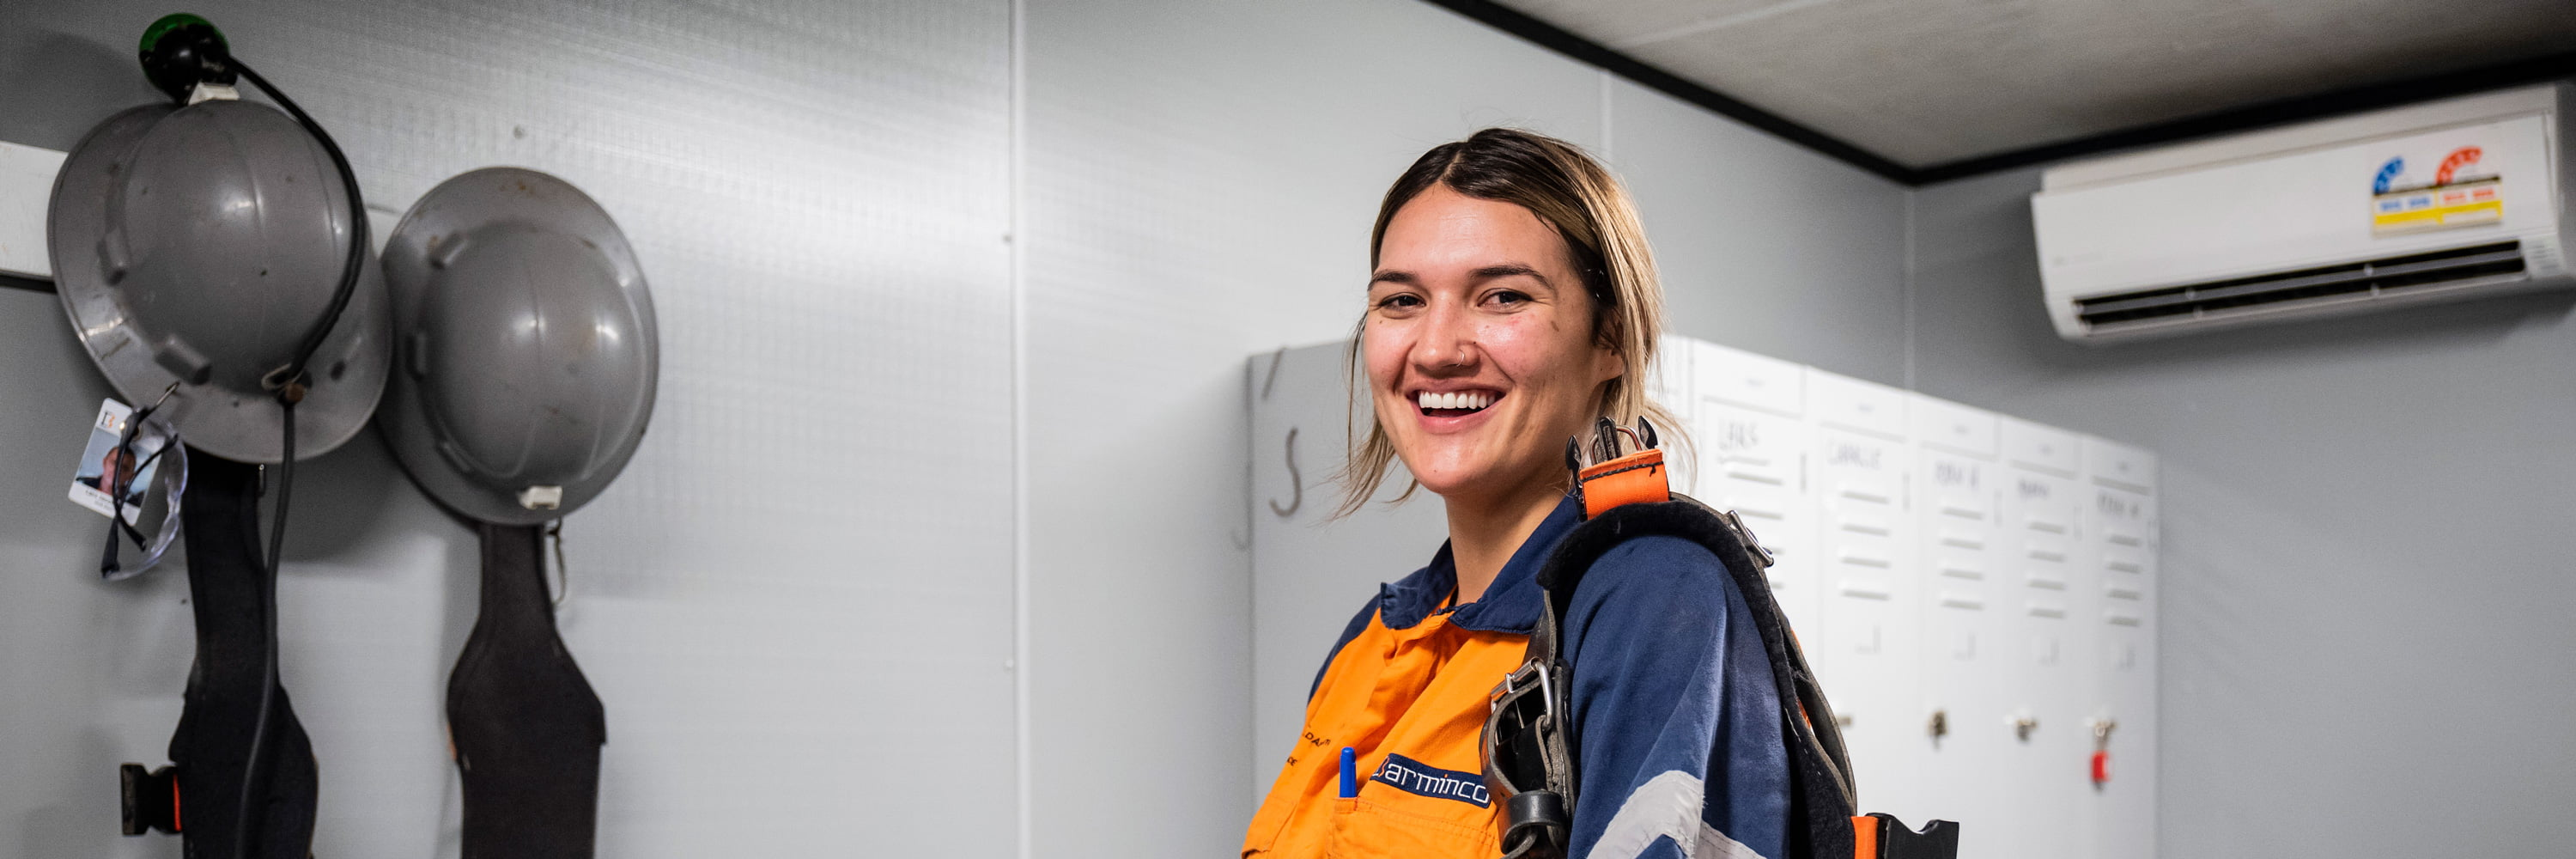 Ausdrill celebrates success with their new employees